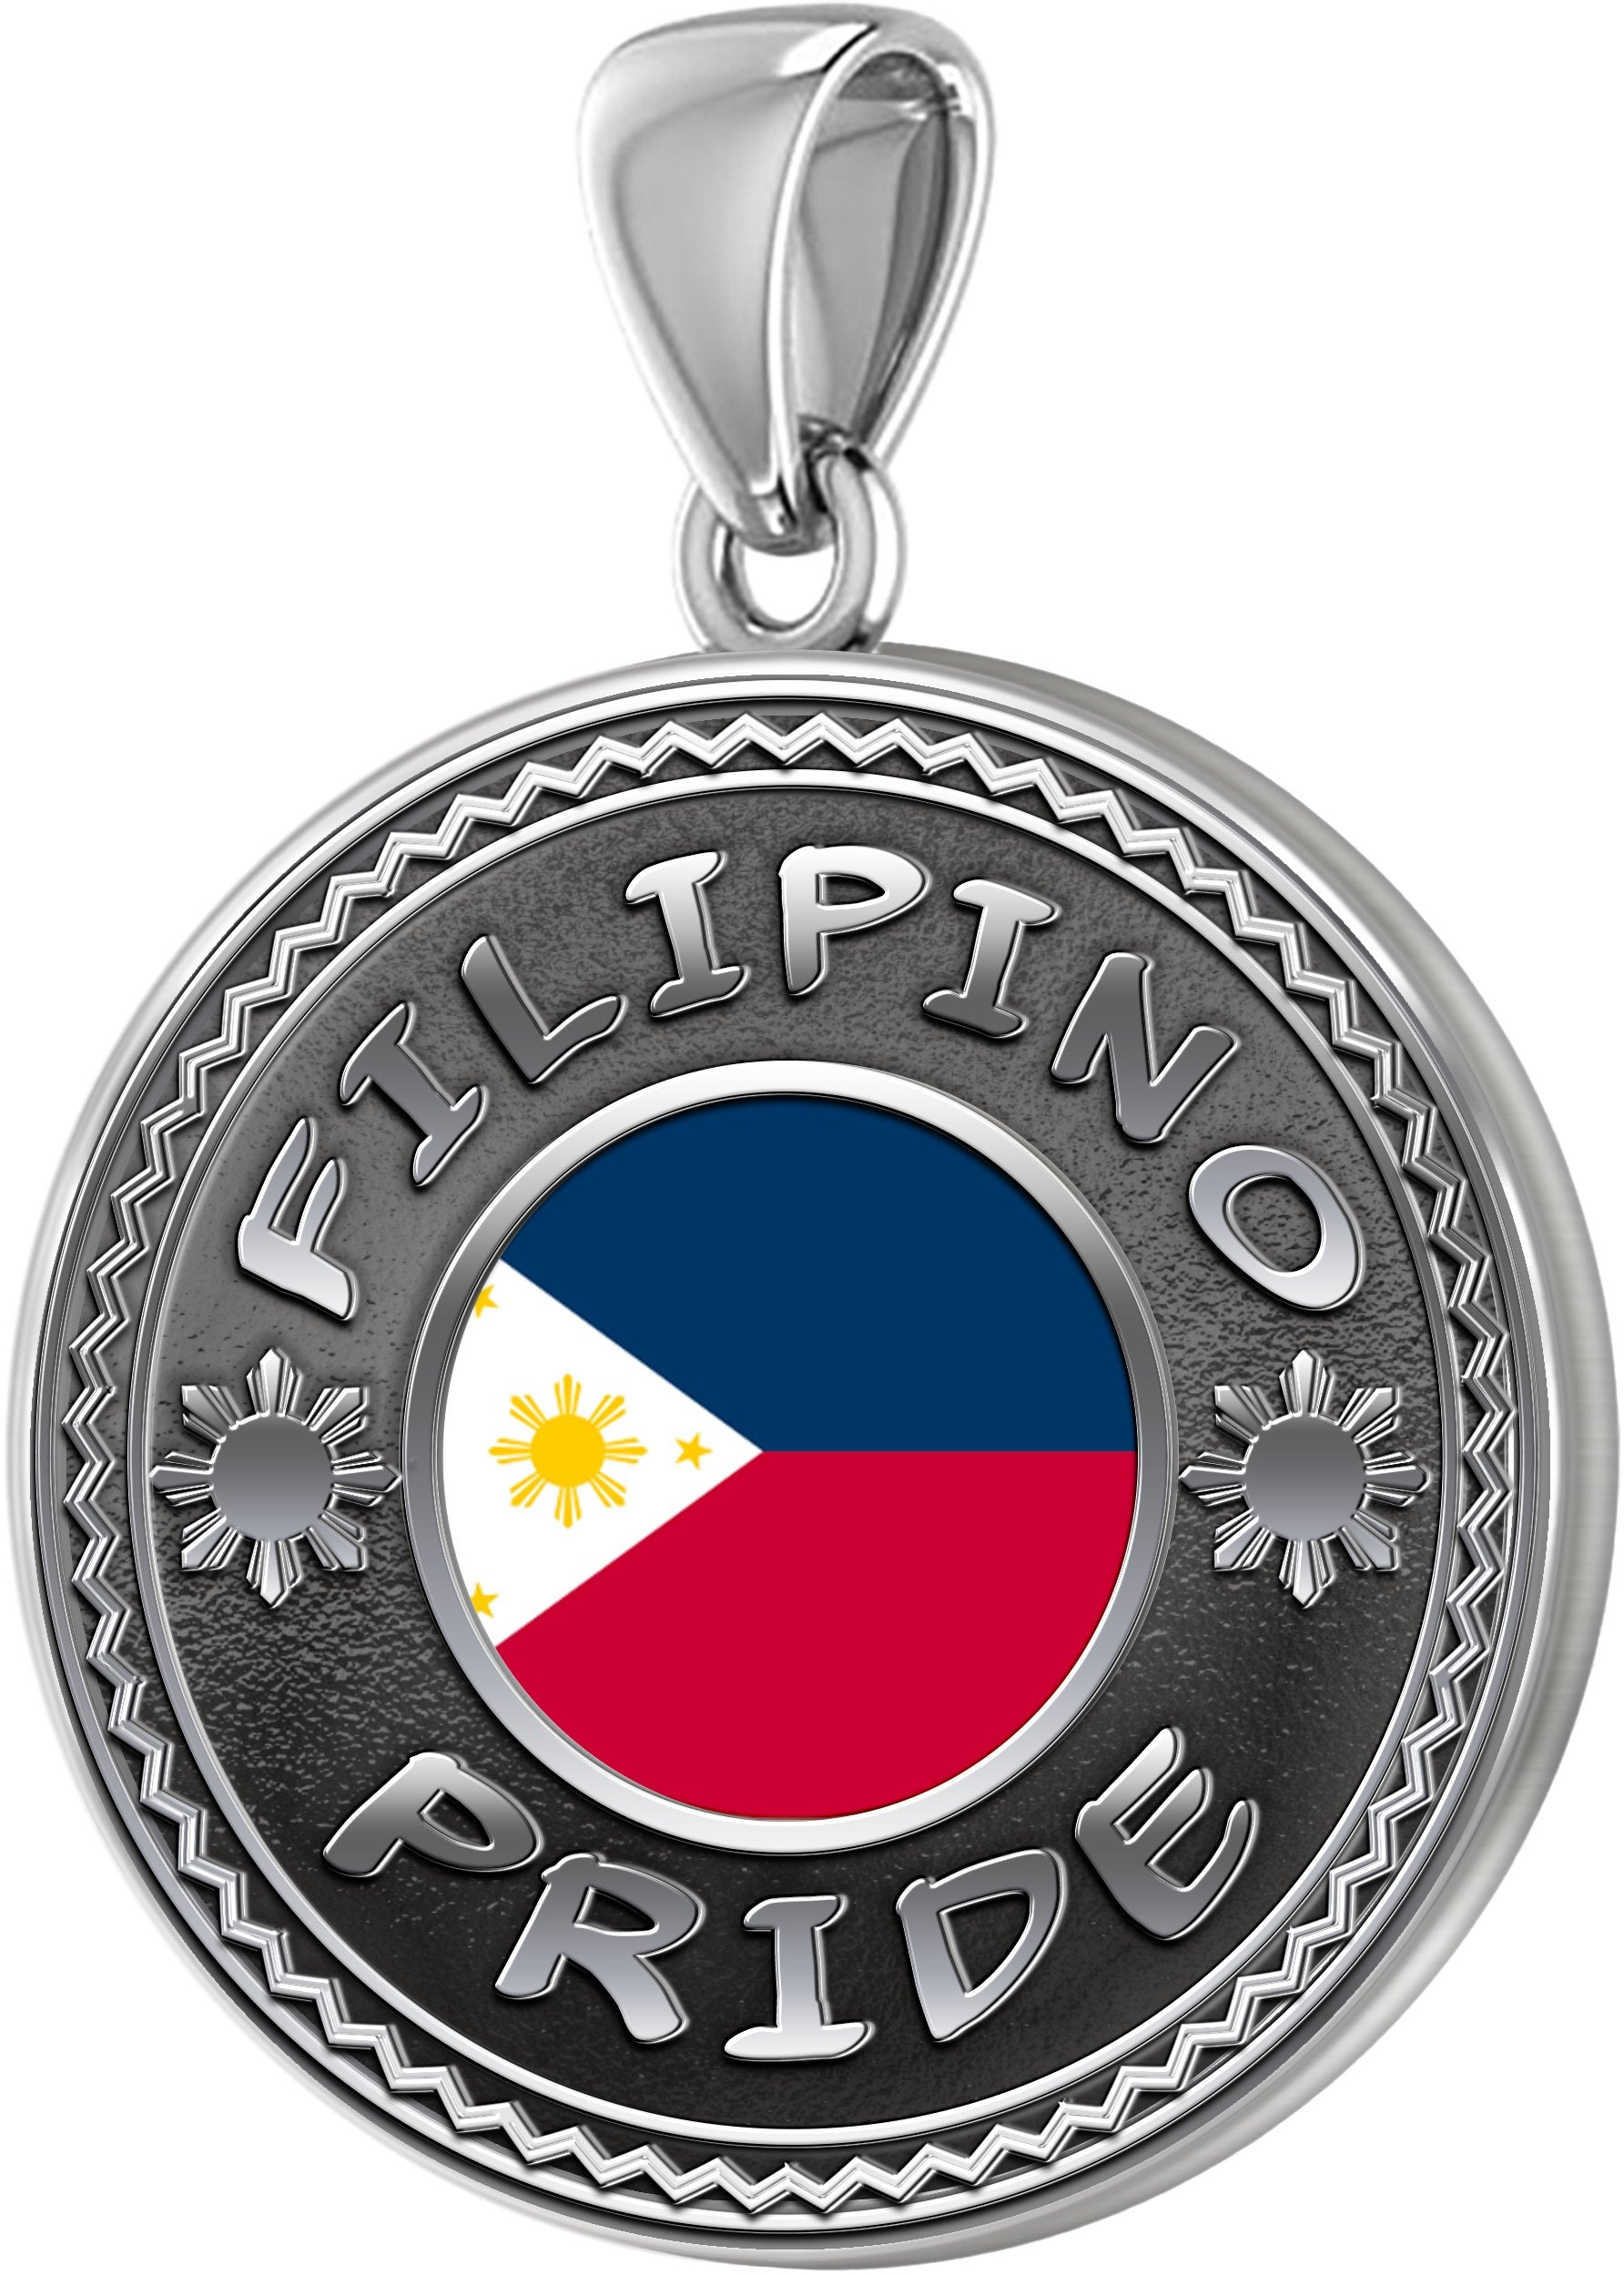 Men's 925 Sterling Silver Filipino Pride Medal Pendant Necklace with Flag, 33mm